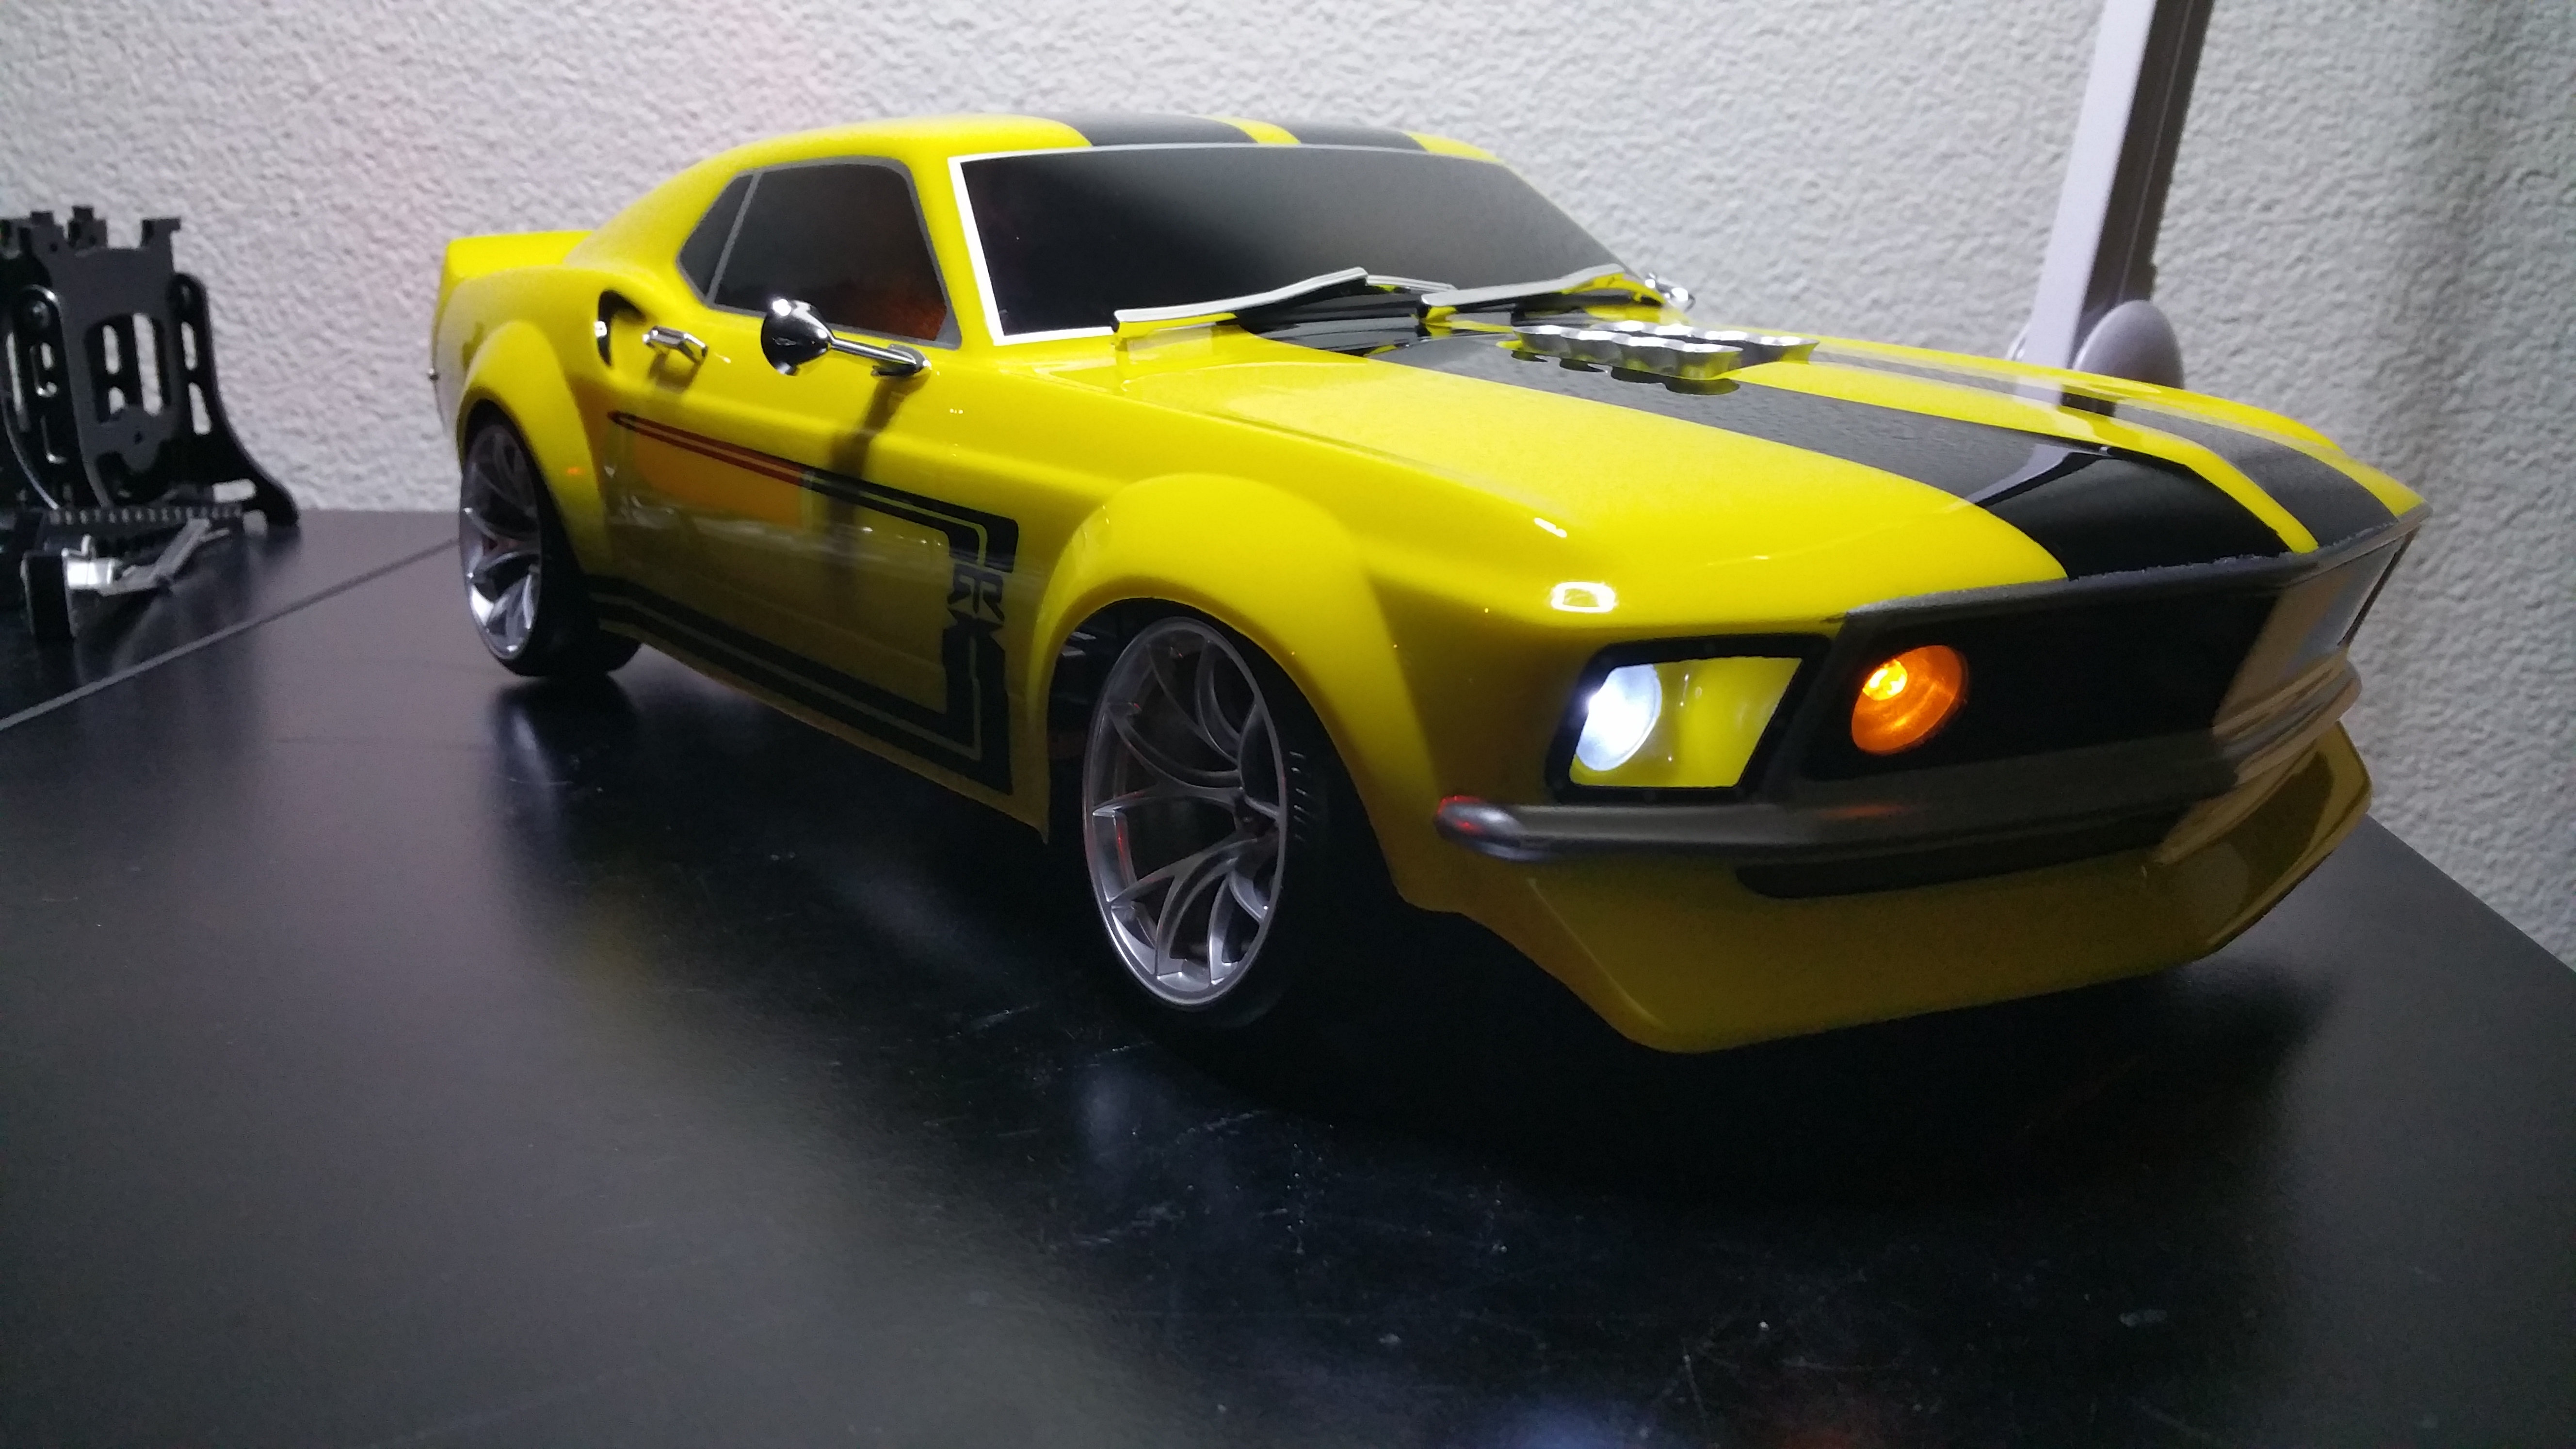 Ford Mustang 69 Boss302 version RTR-X  A0qg